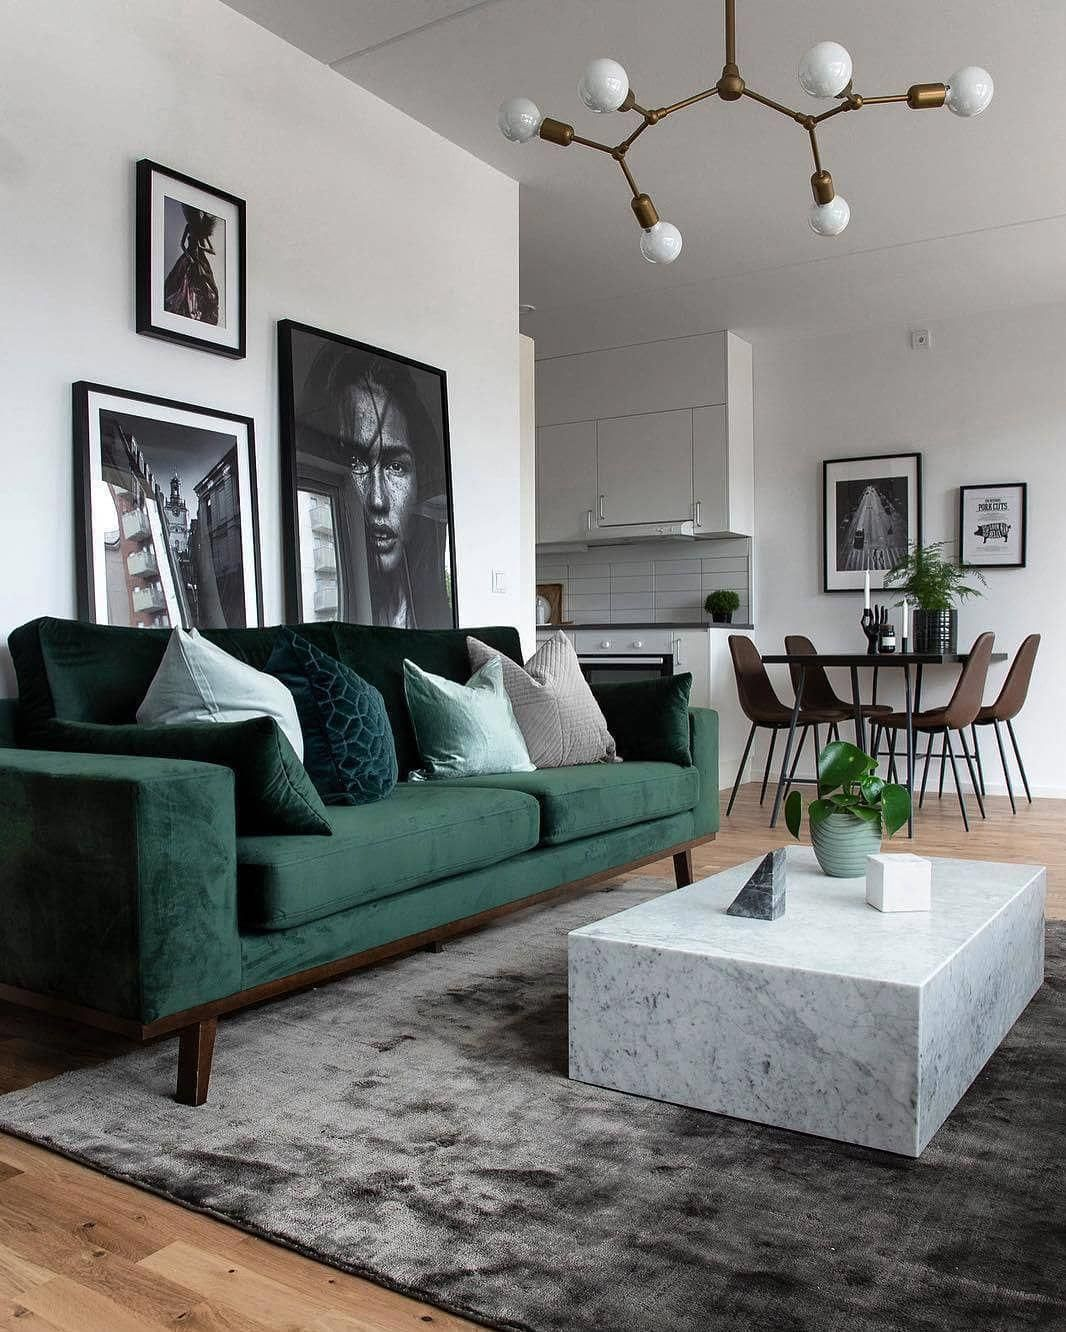 Havana S 500 Year Anniversary Twuss Home Design Living Room Living Room Scandinavian Scandi Living Room Living room means what